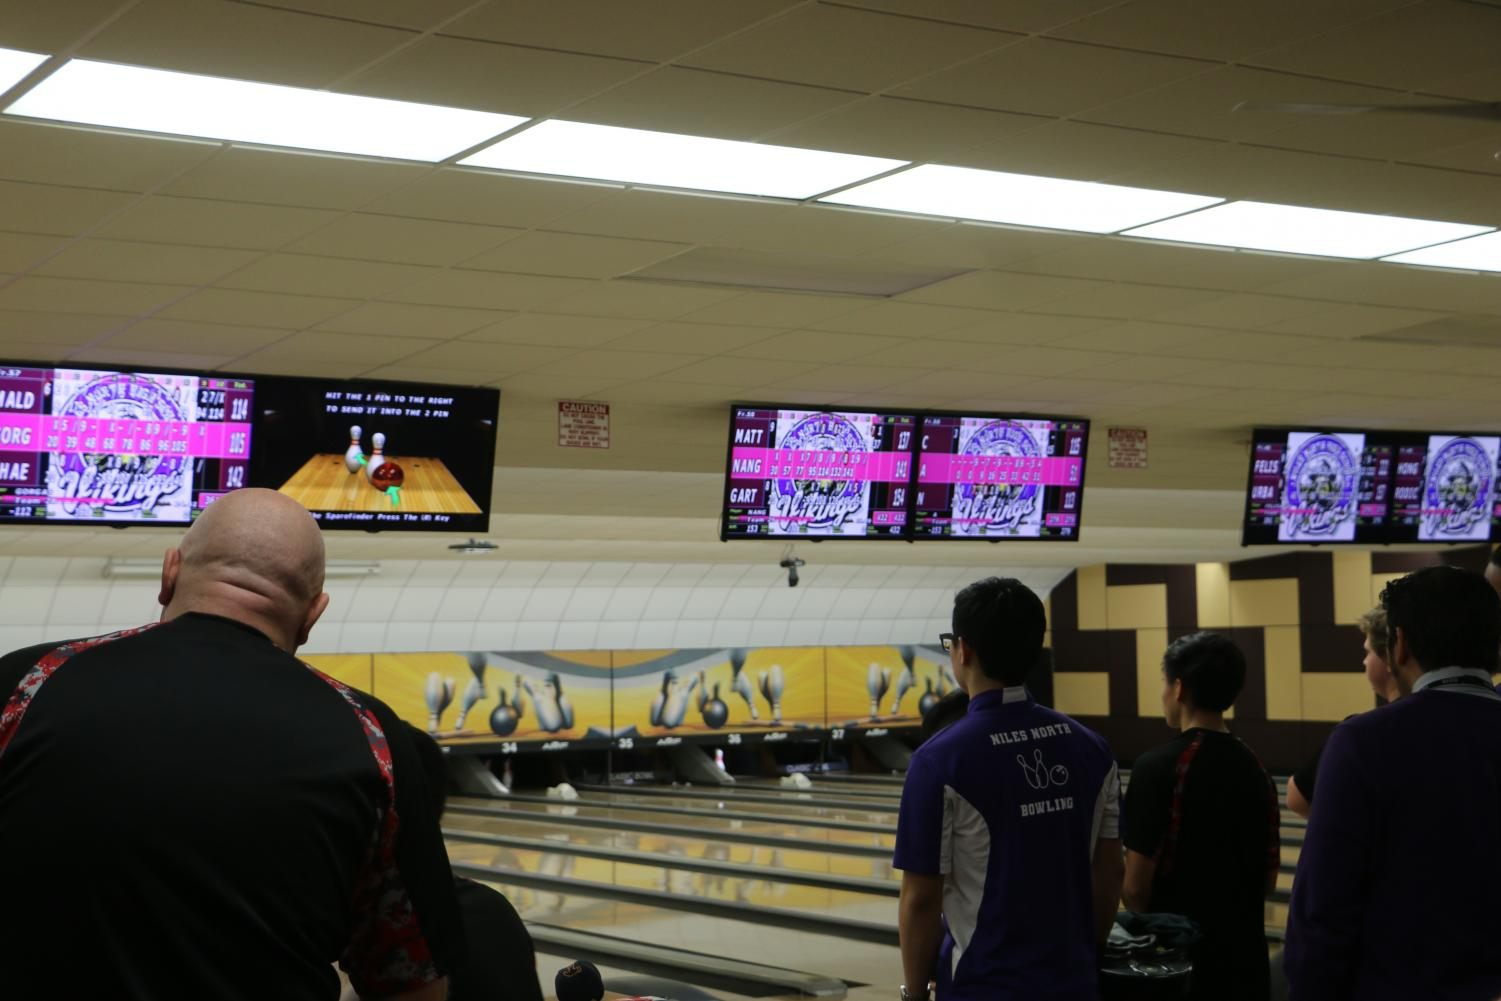 The+Niles+West+bowling+team+checking+the+scoreboard+to+see+who%27s+in+the+lead.+